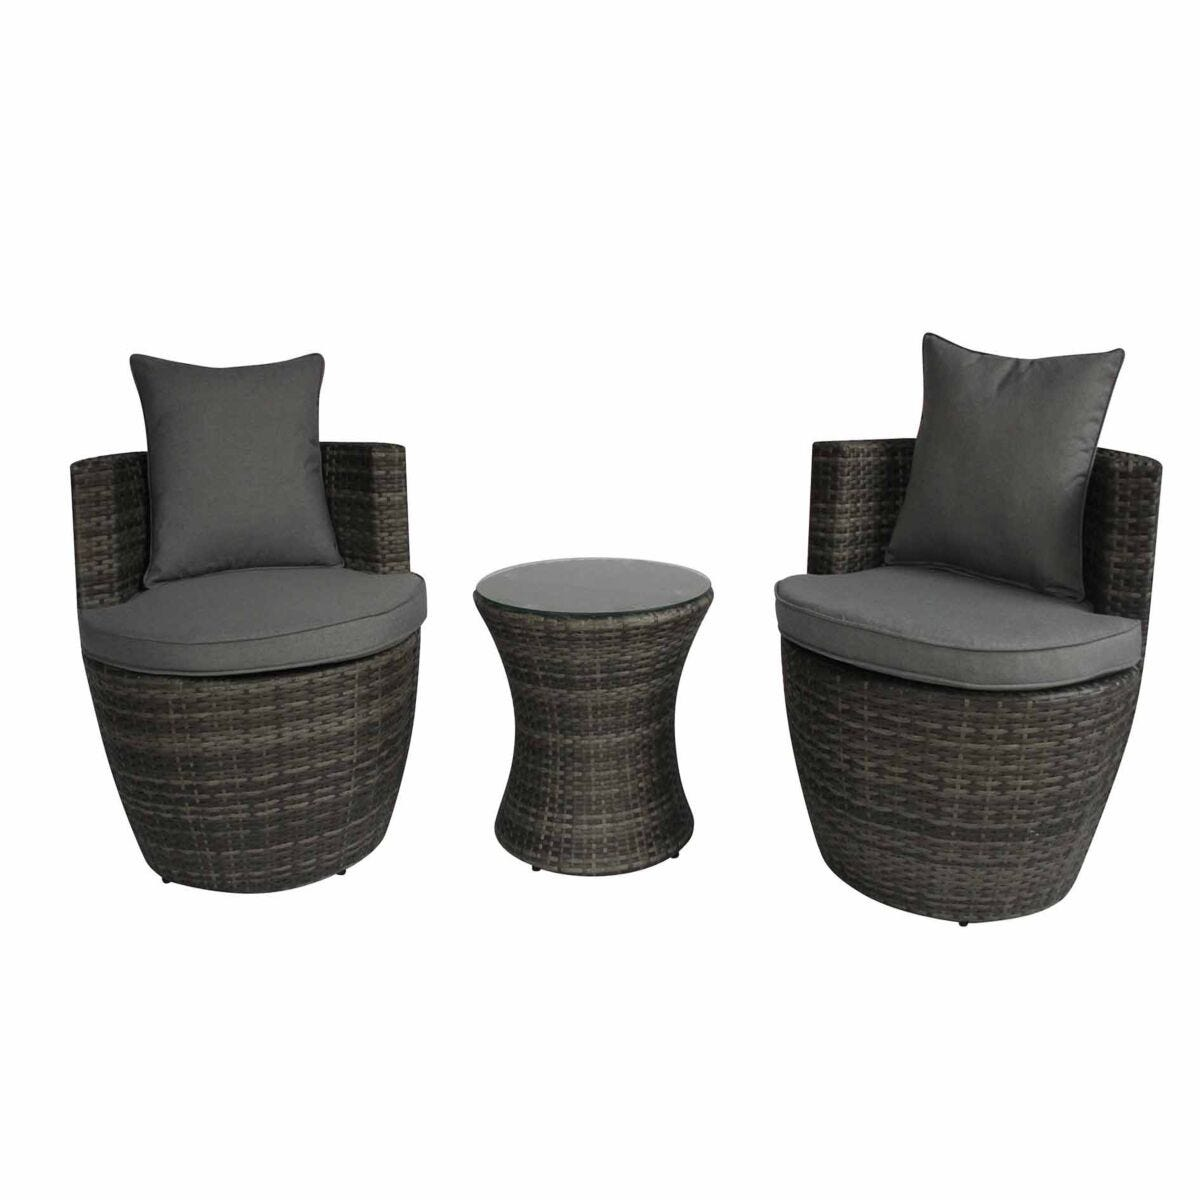 Charles Bentley Rattan Stacking 3 Piece Garden Furniture Set